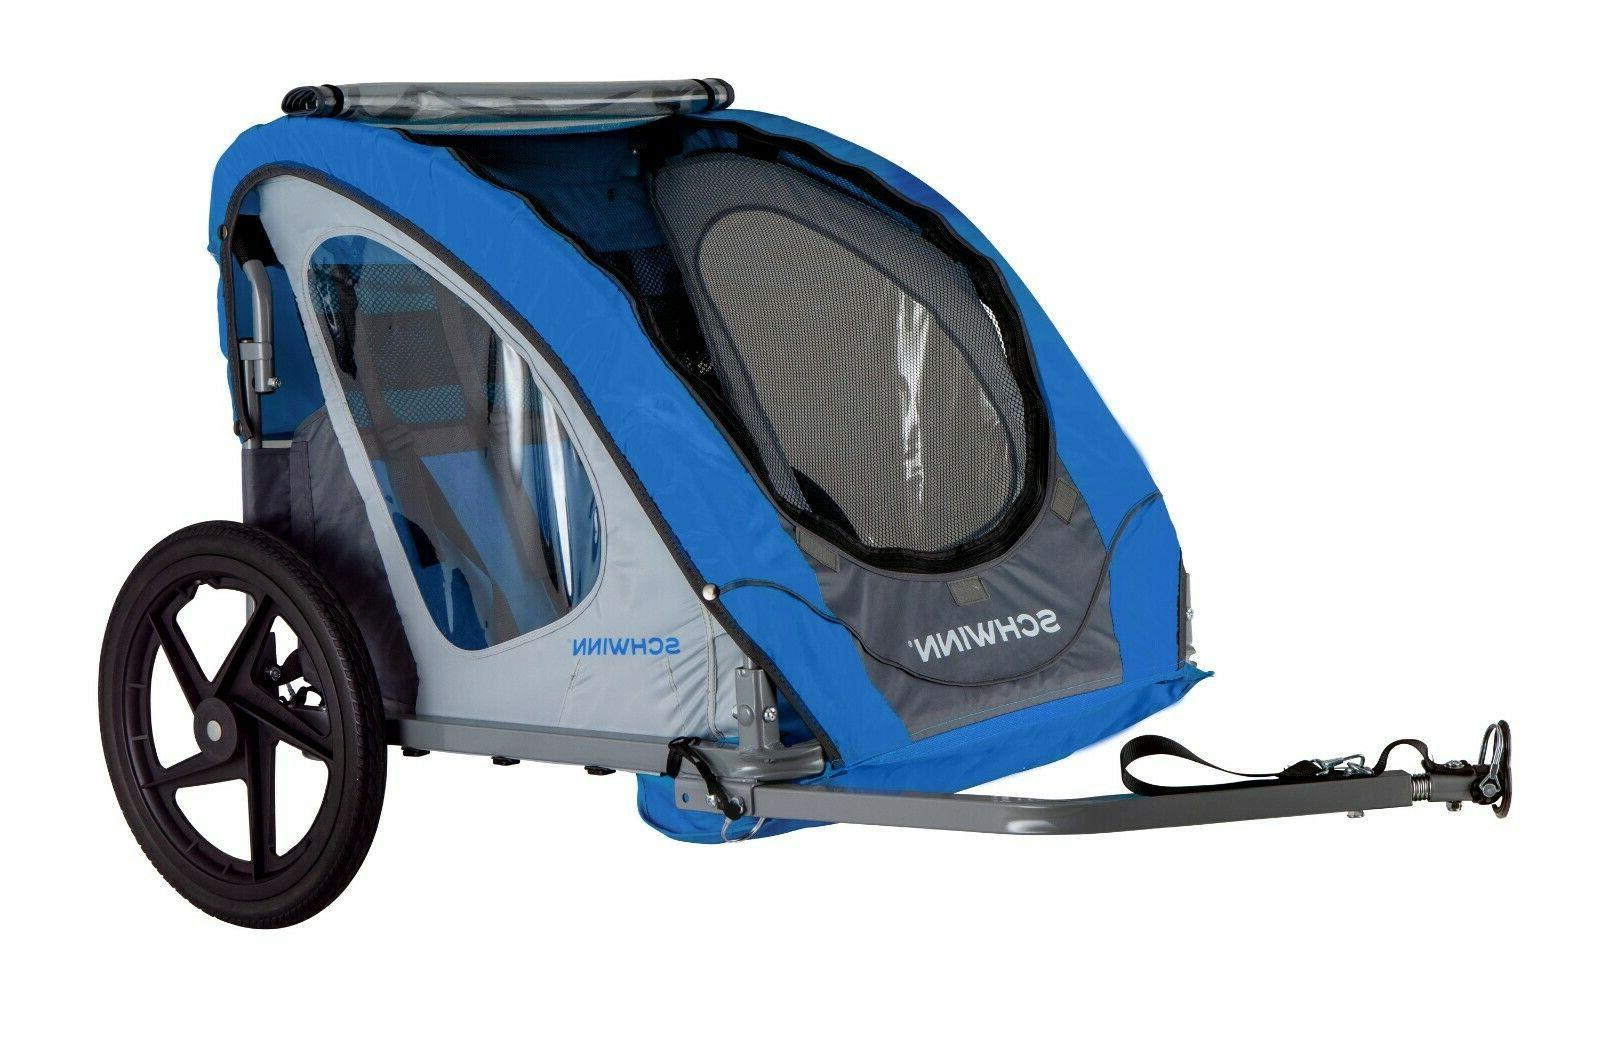 foldable double child baby bike trailer compact